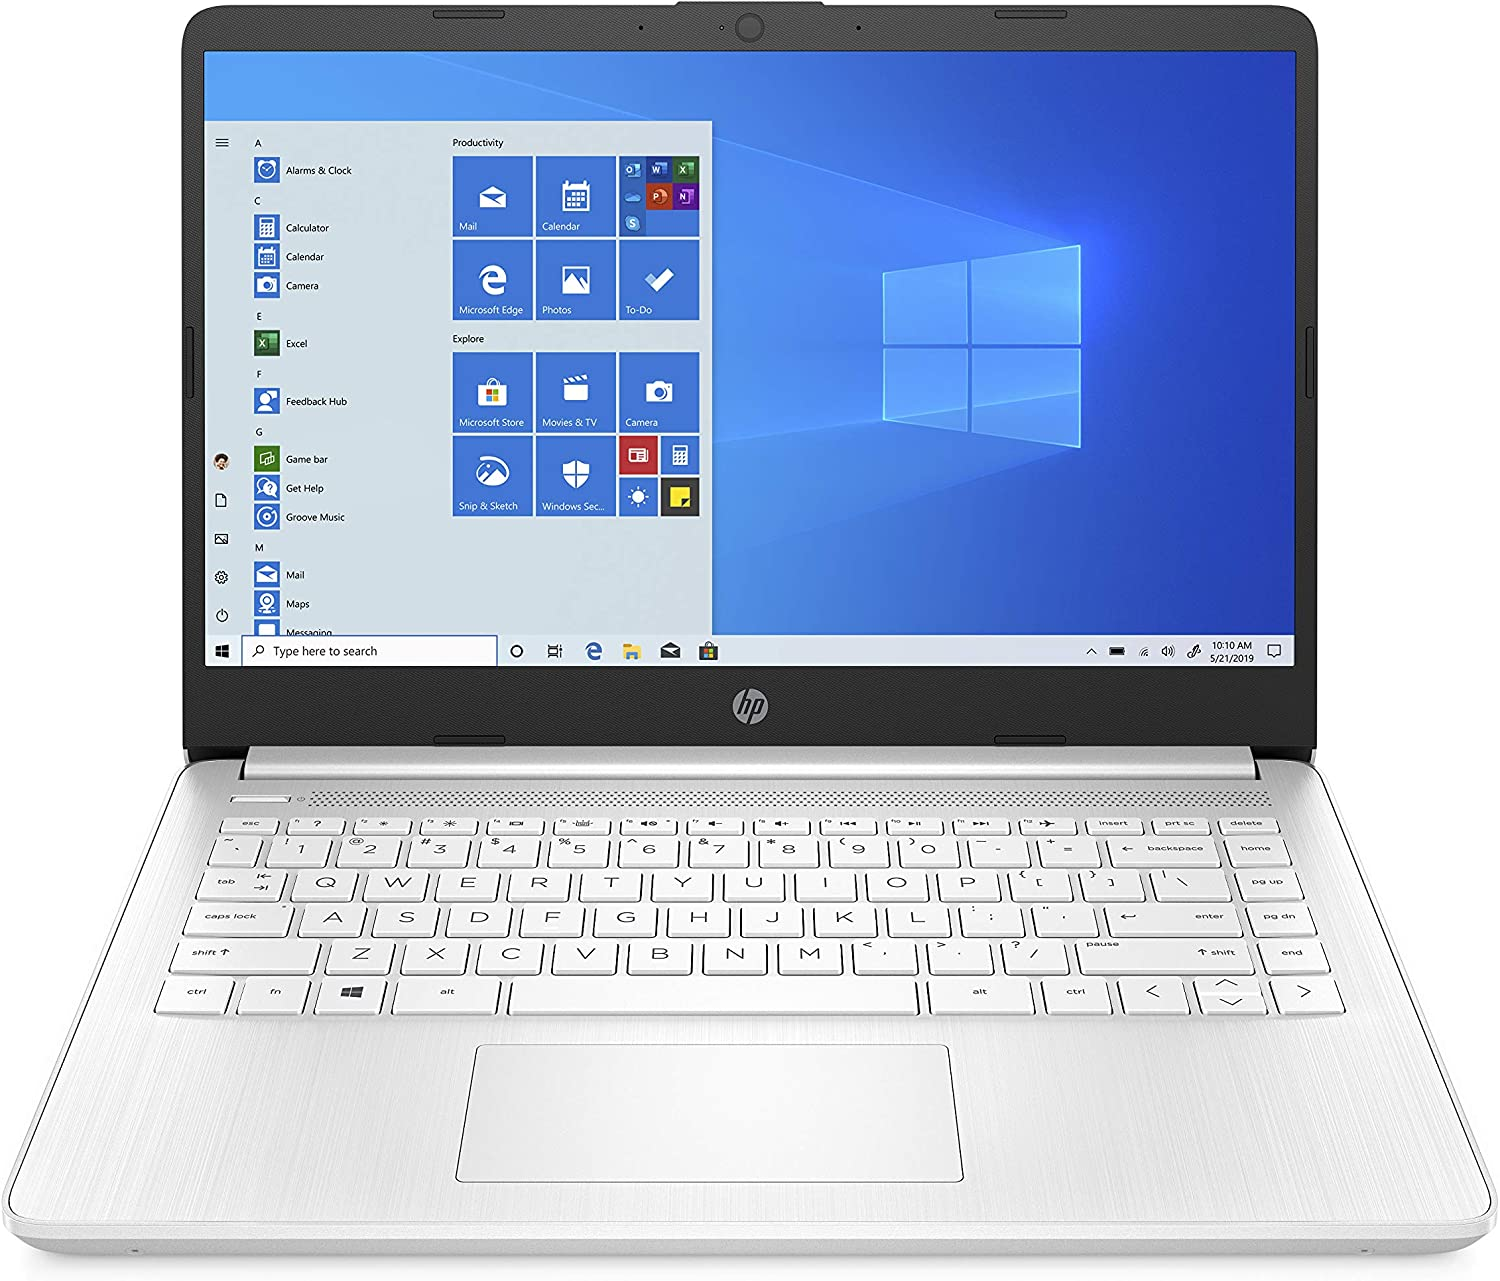 HP 14-inch Laptop, AMD 3020e Processor, AMD Radeon Graphics, 4 GB RAM, 64 GB eMMC, Windows 10 Home in S Mode (14-fq0070nr, Snowflake White)